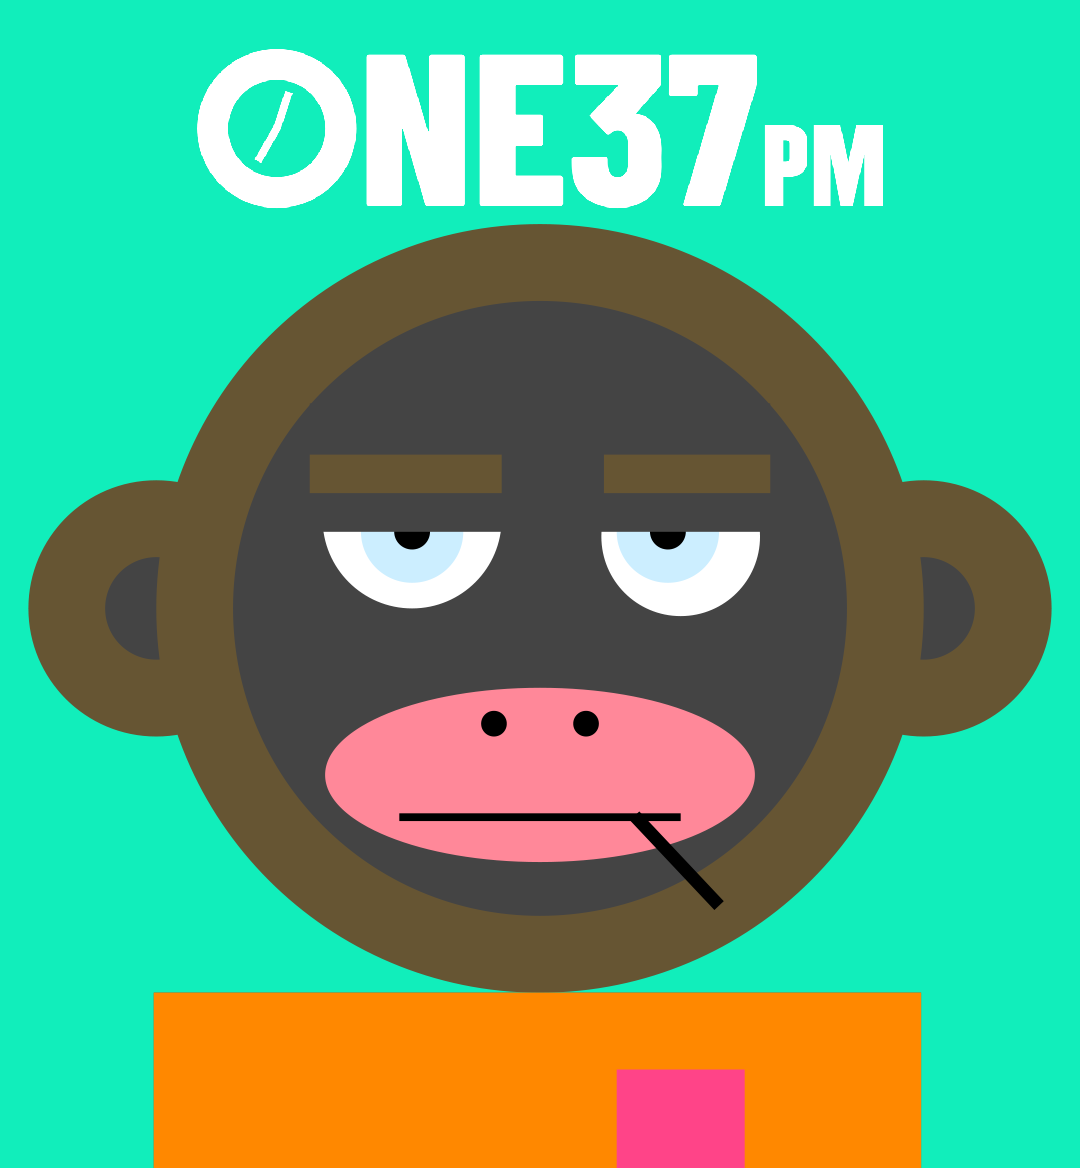 MOBILE NF3 monky